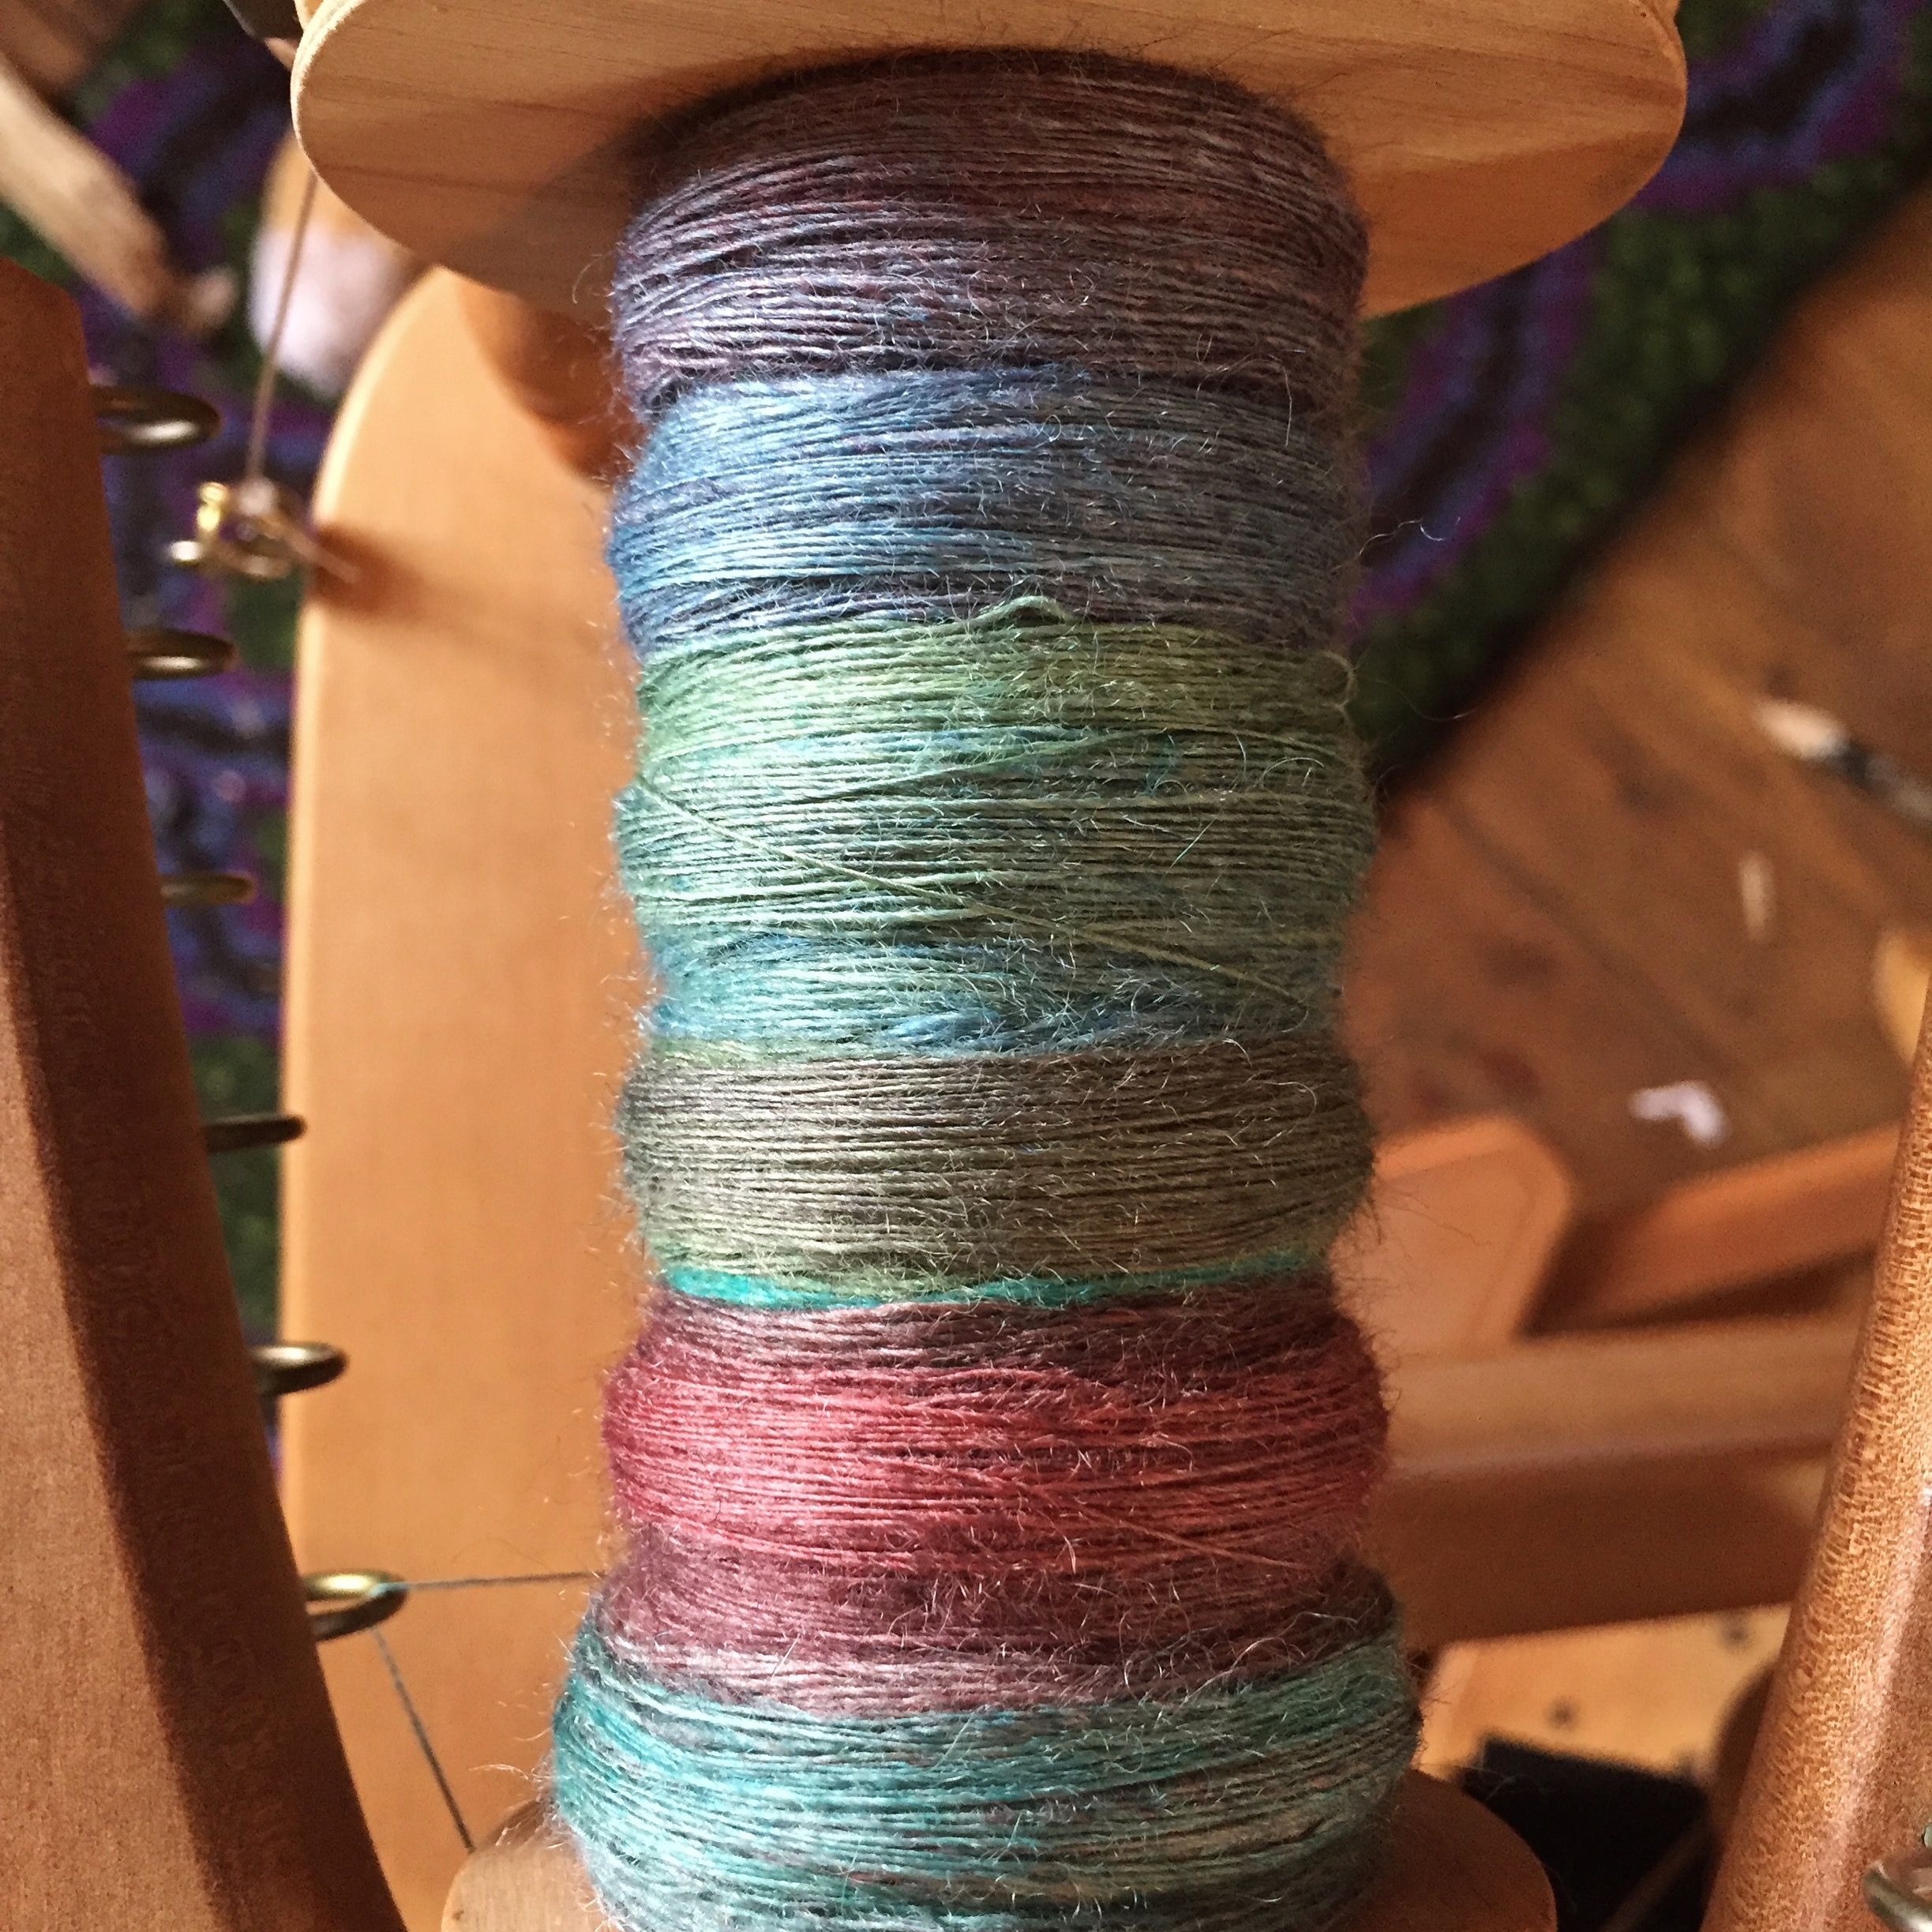 Multi coloured hand dyed yarn on the bobbin of a spinning wheel